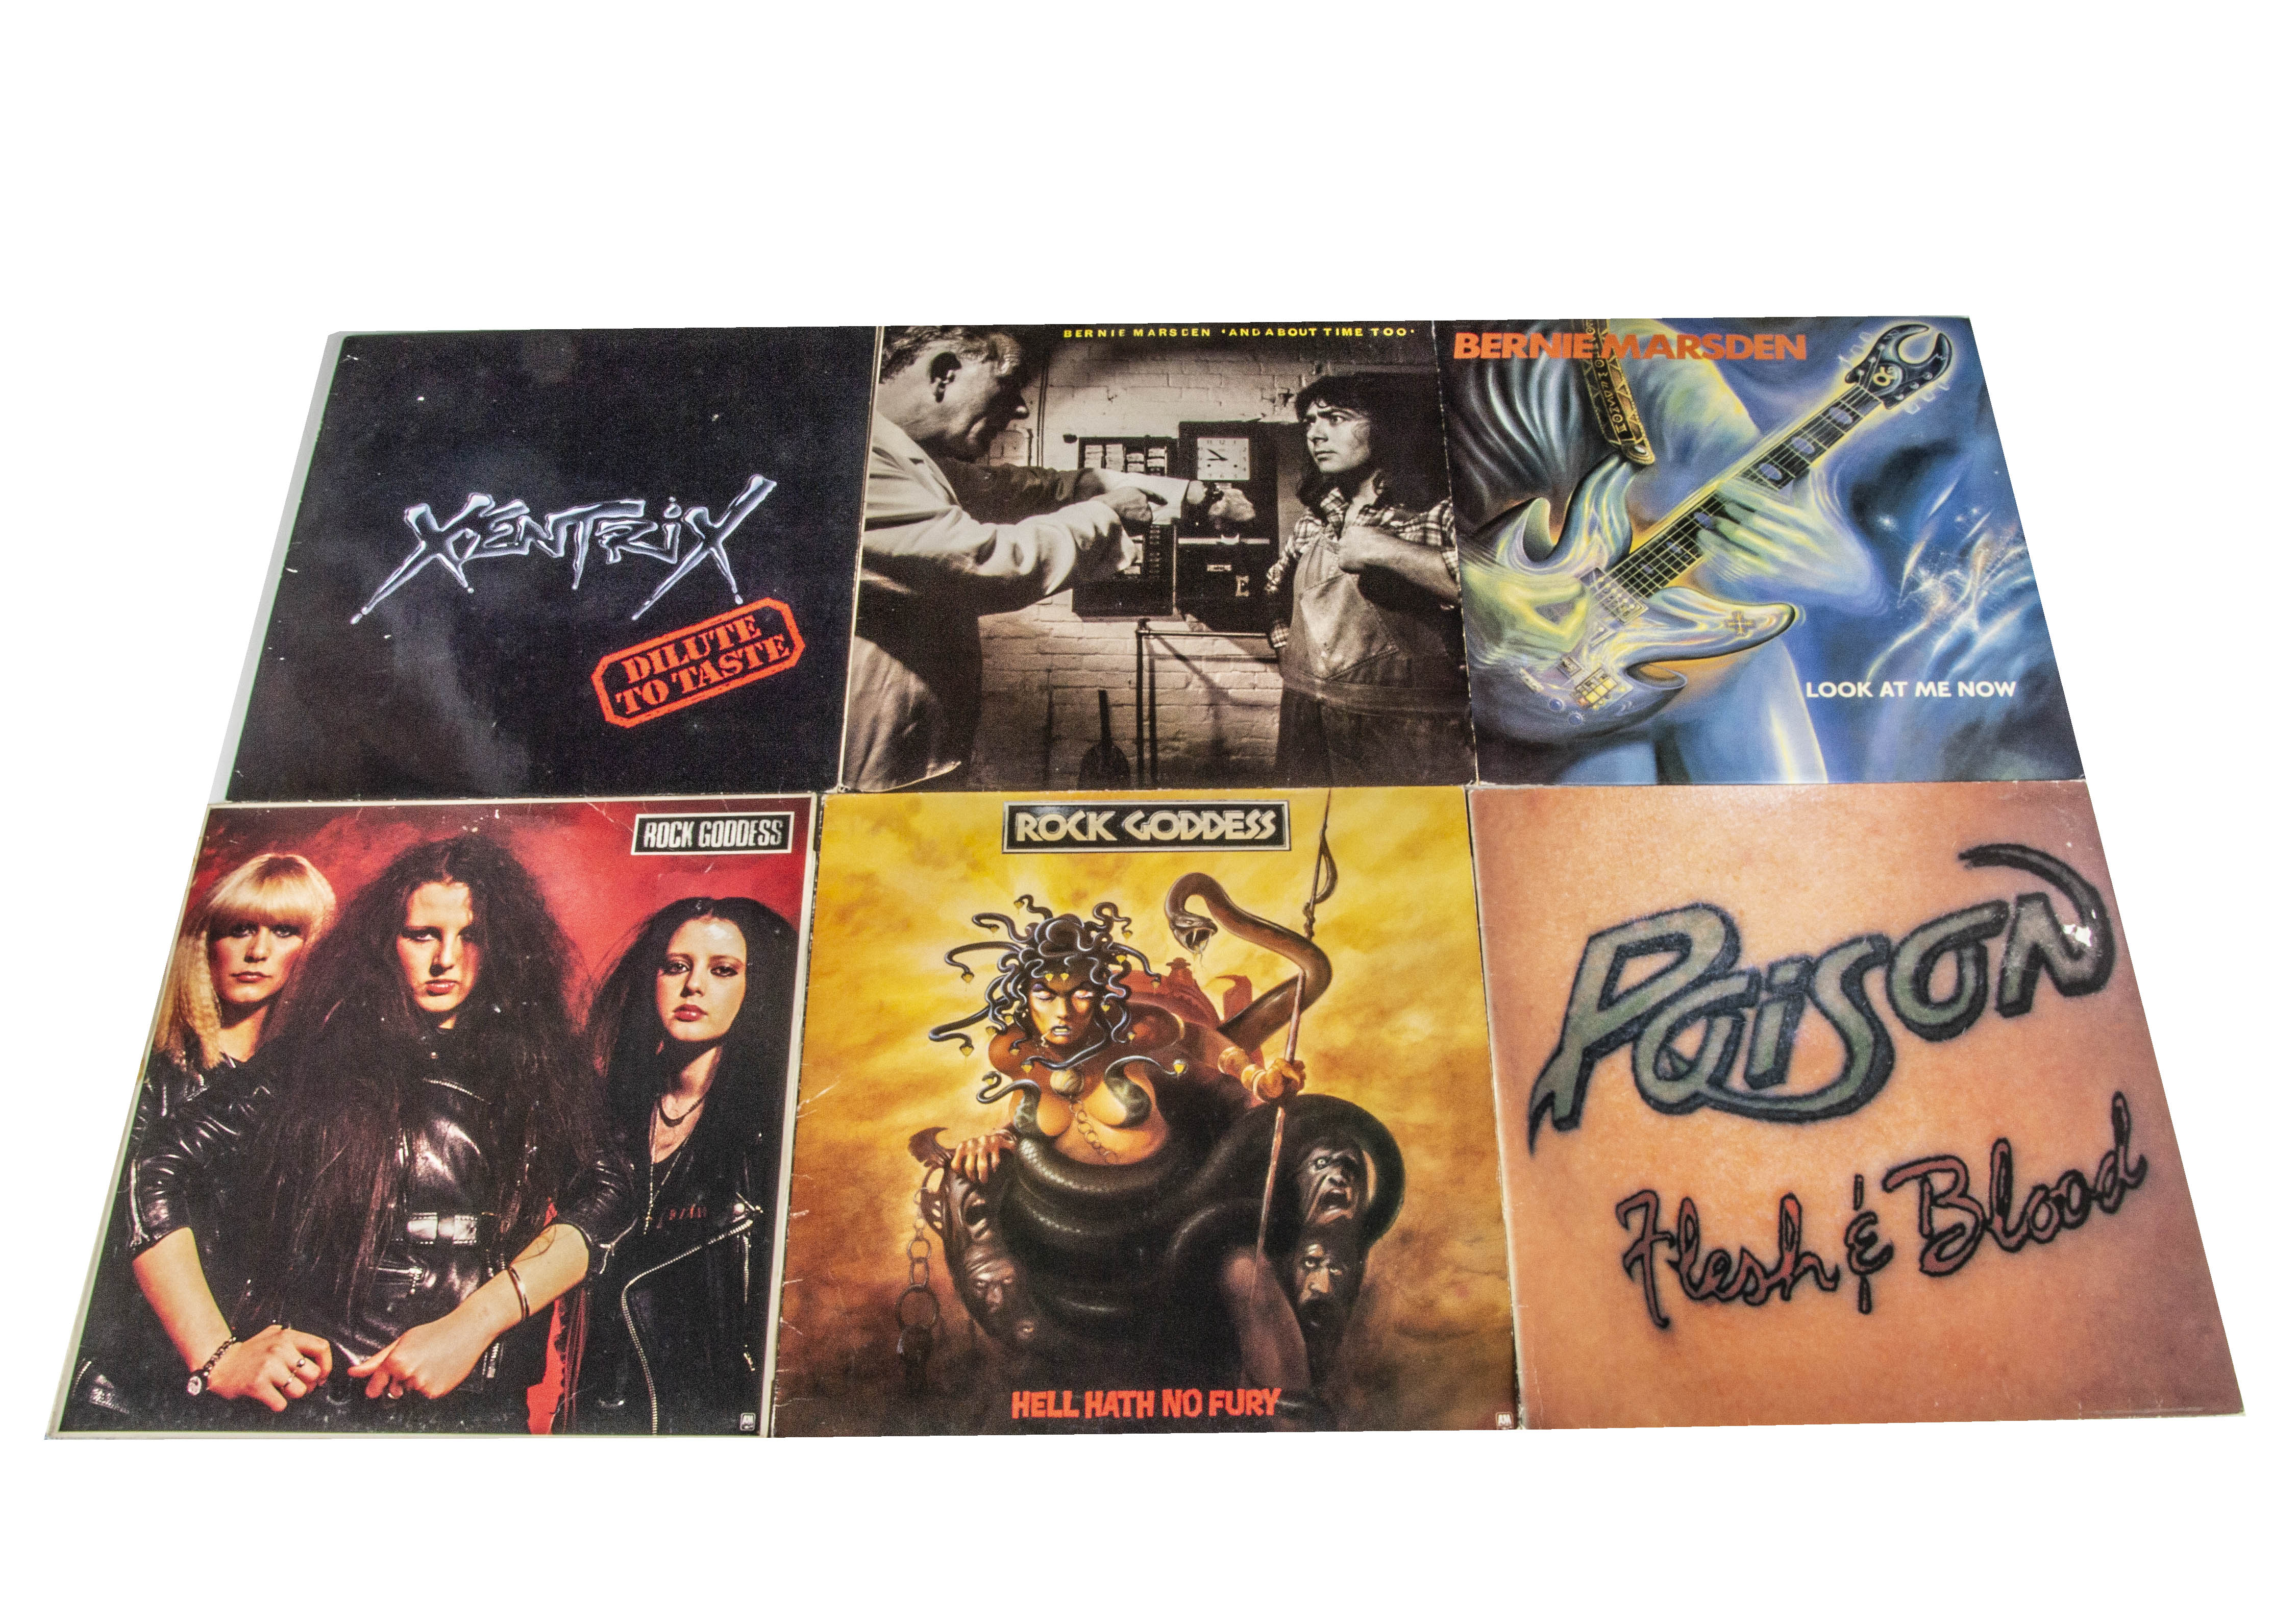 Rock / Metal LPs, approximately seventy albums of mainly Rock and Metal with artists including